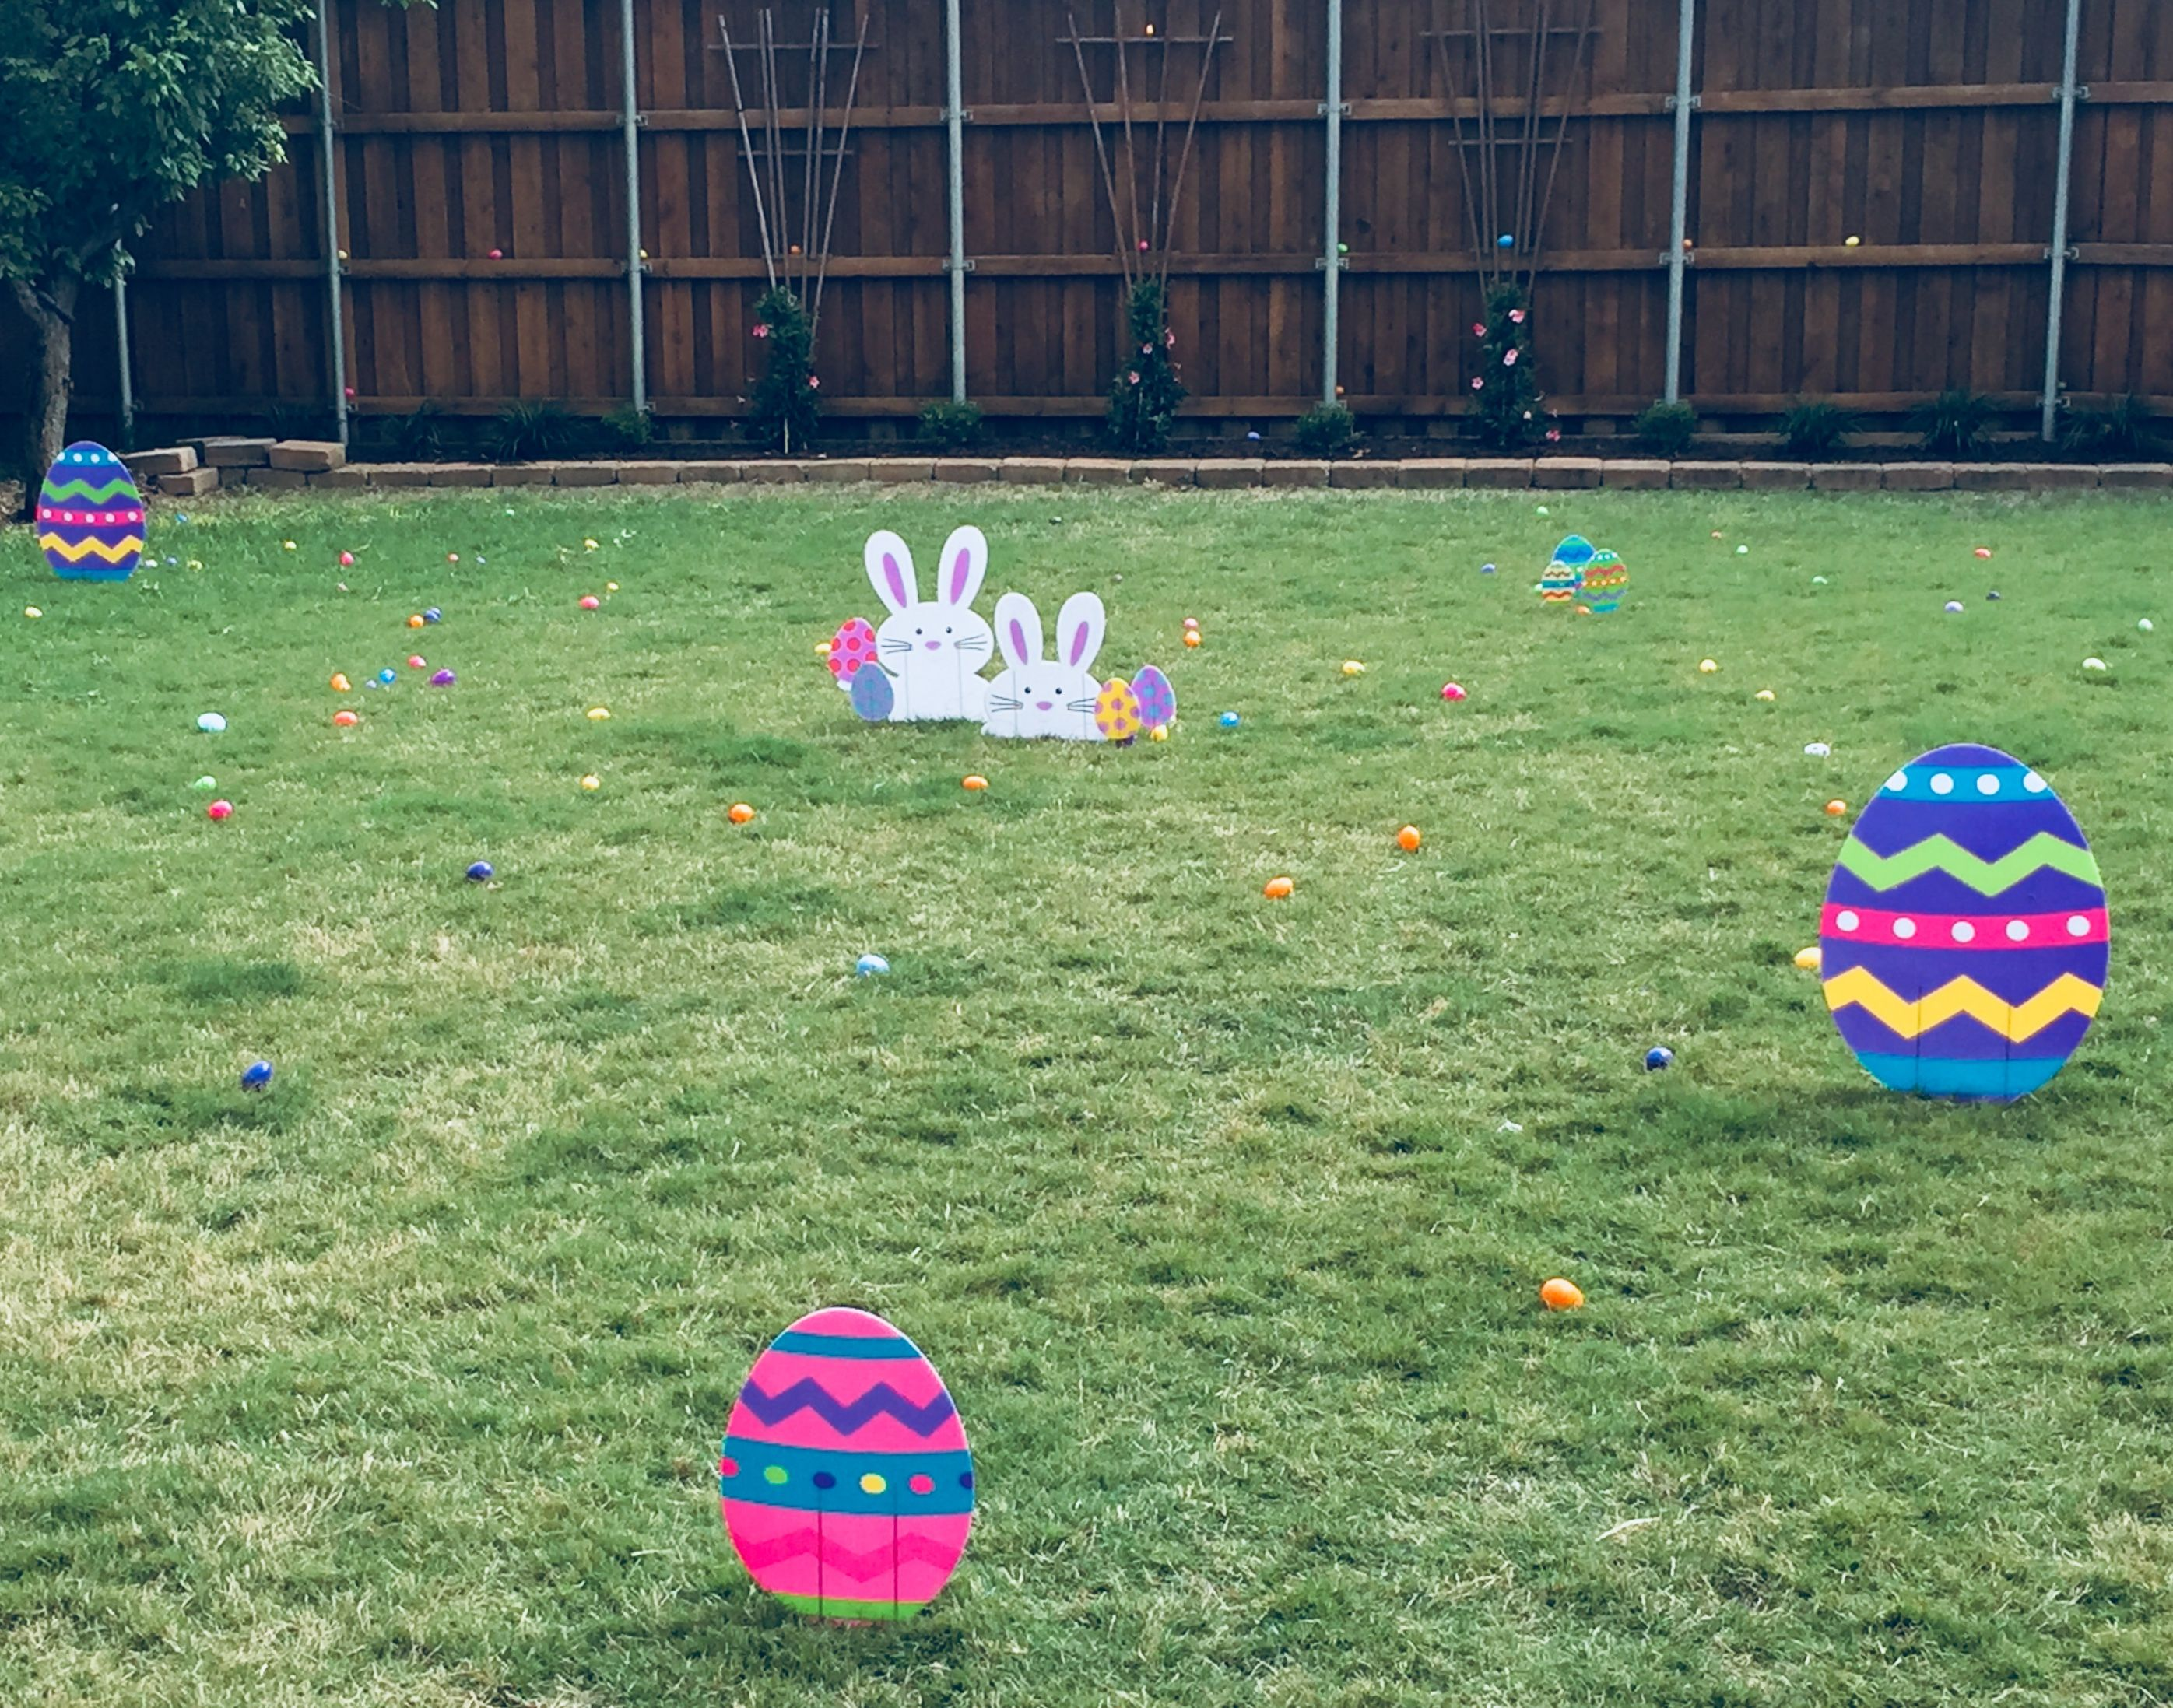 Cute Yard Sign Decorations For Easter Egg Hunts Or The Front Yard